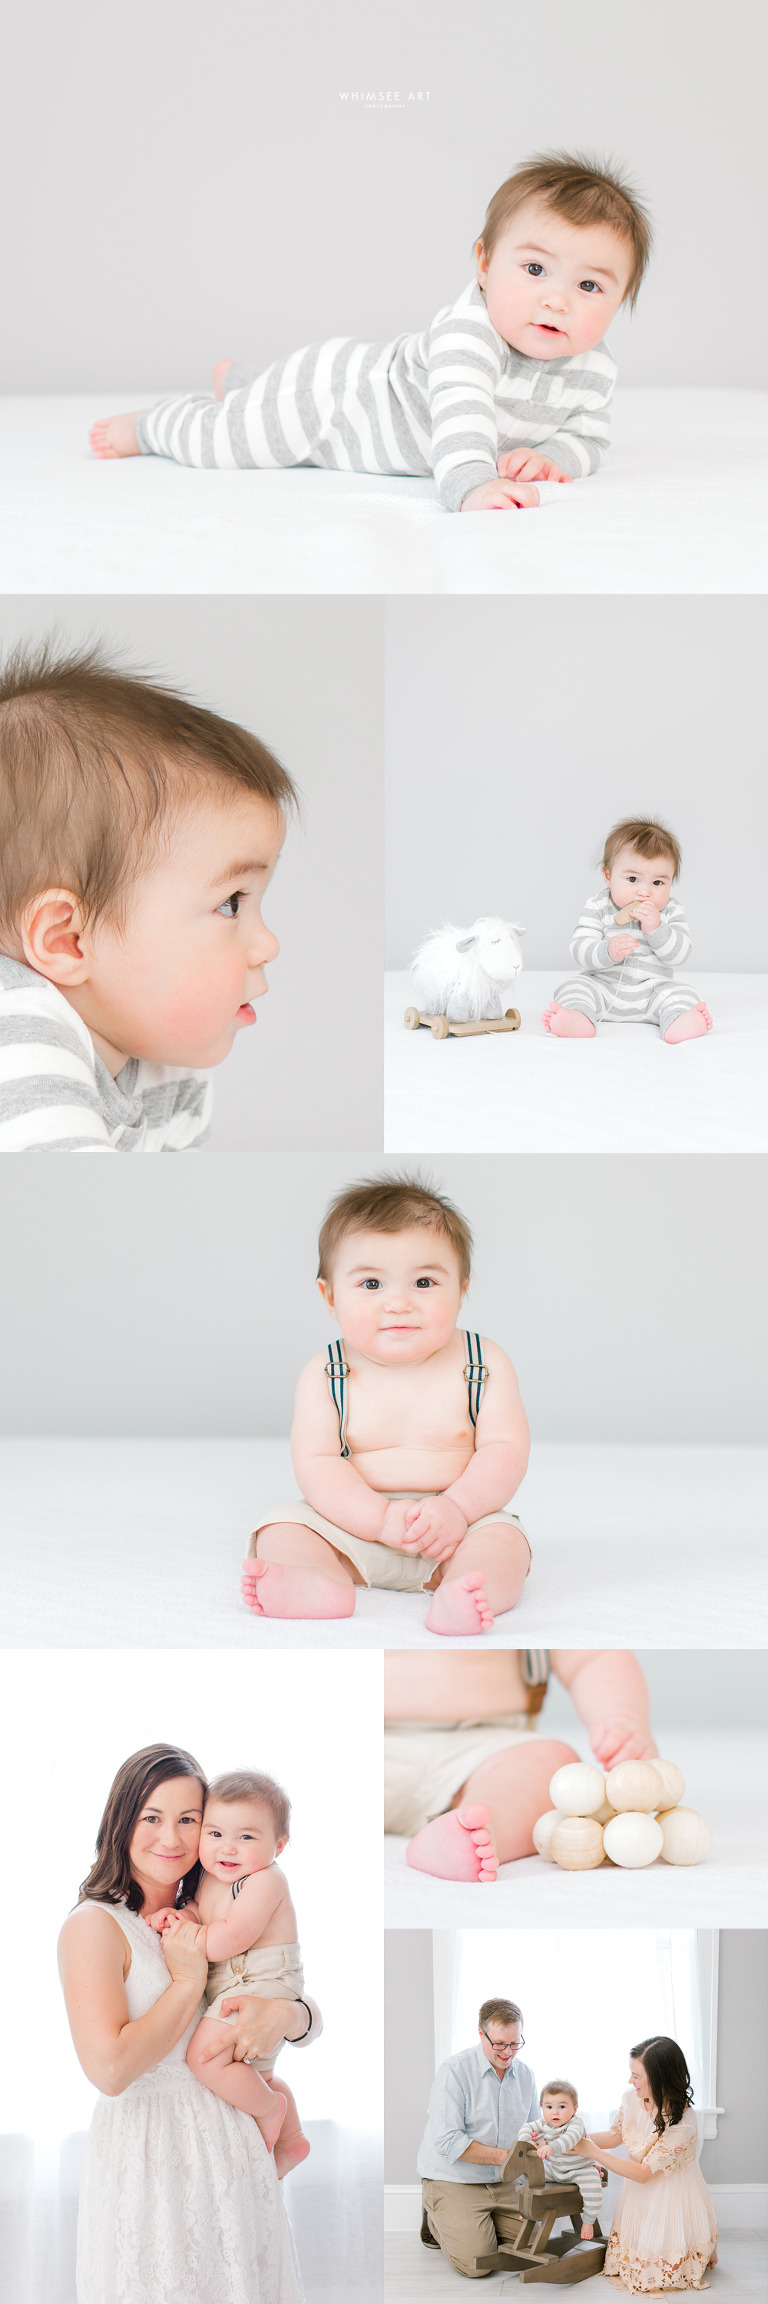 Contemporary Child Photography | Child Photography | Whimsee Art Photography